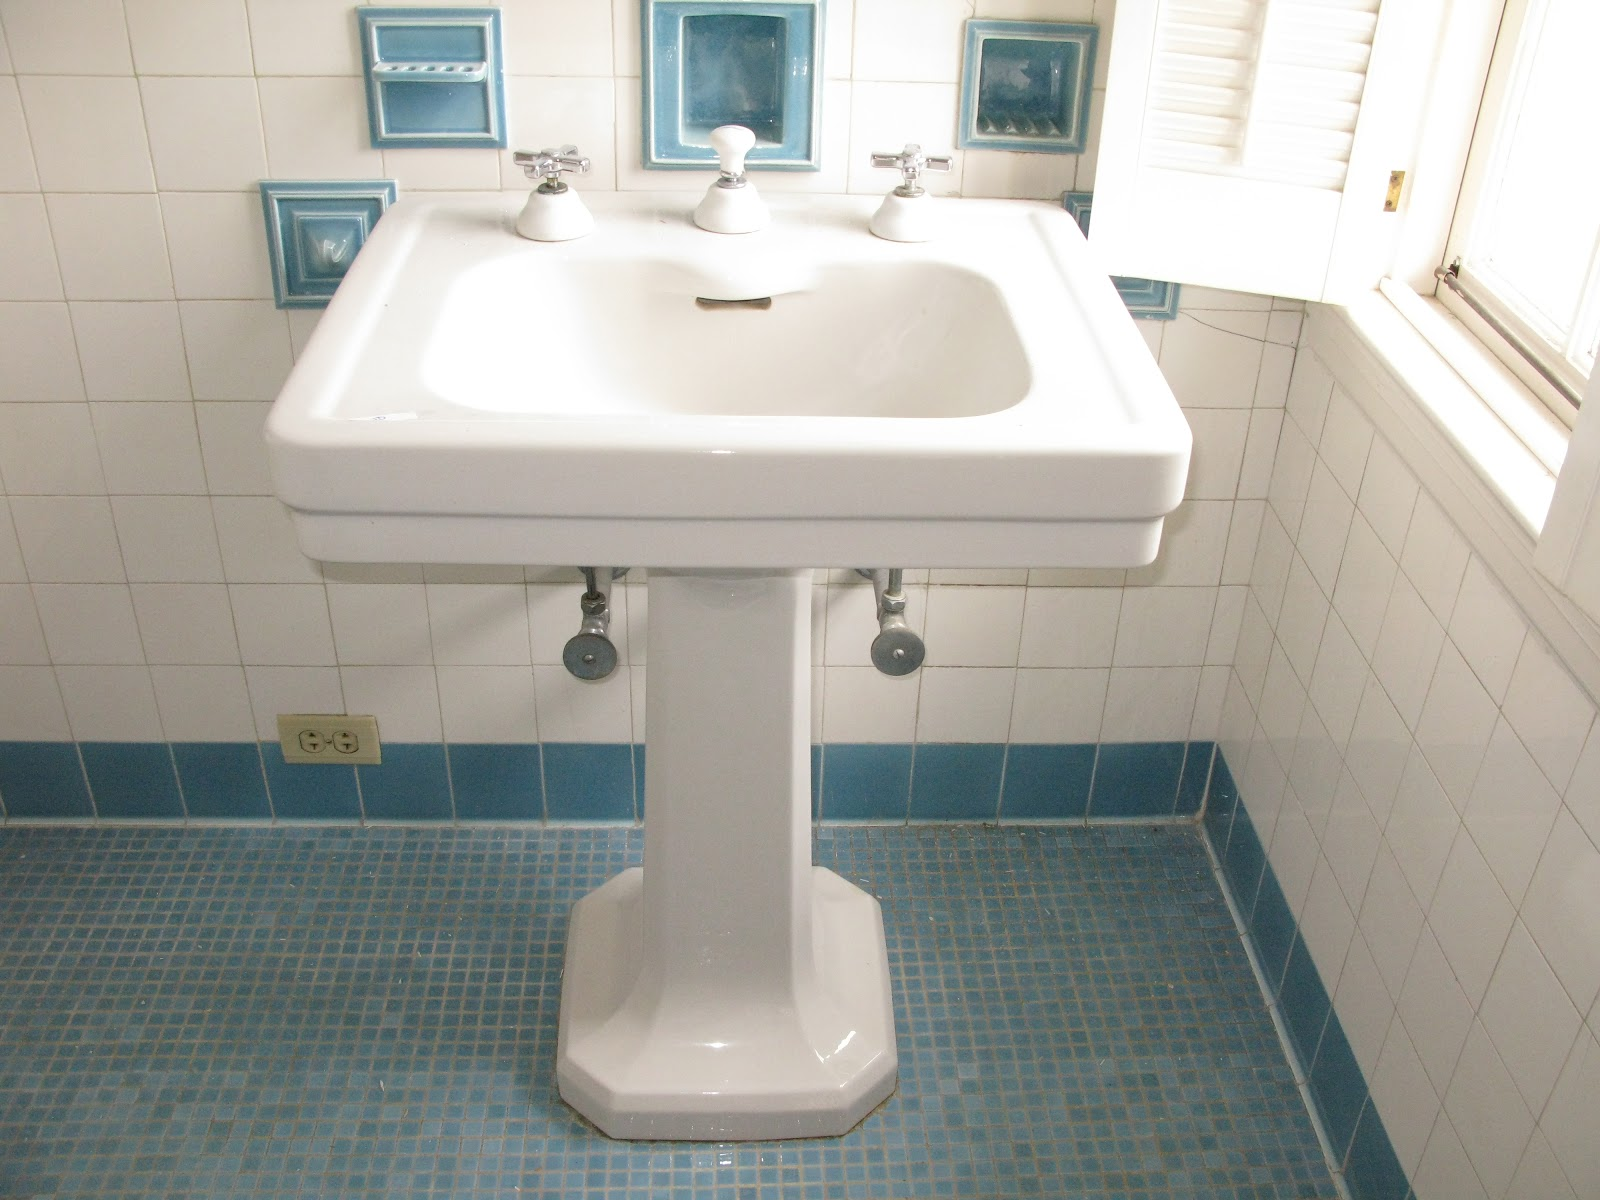 Cool White Pedestal Sink With Integral Filler Spout